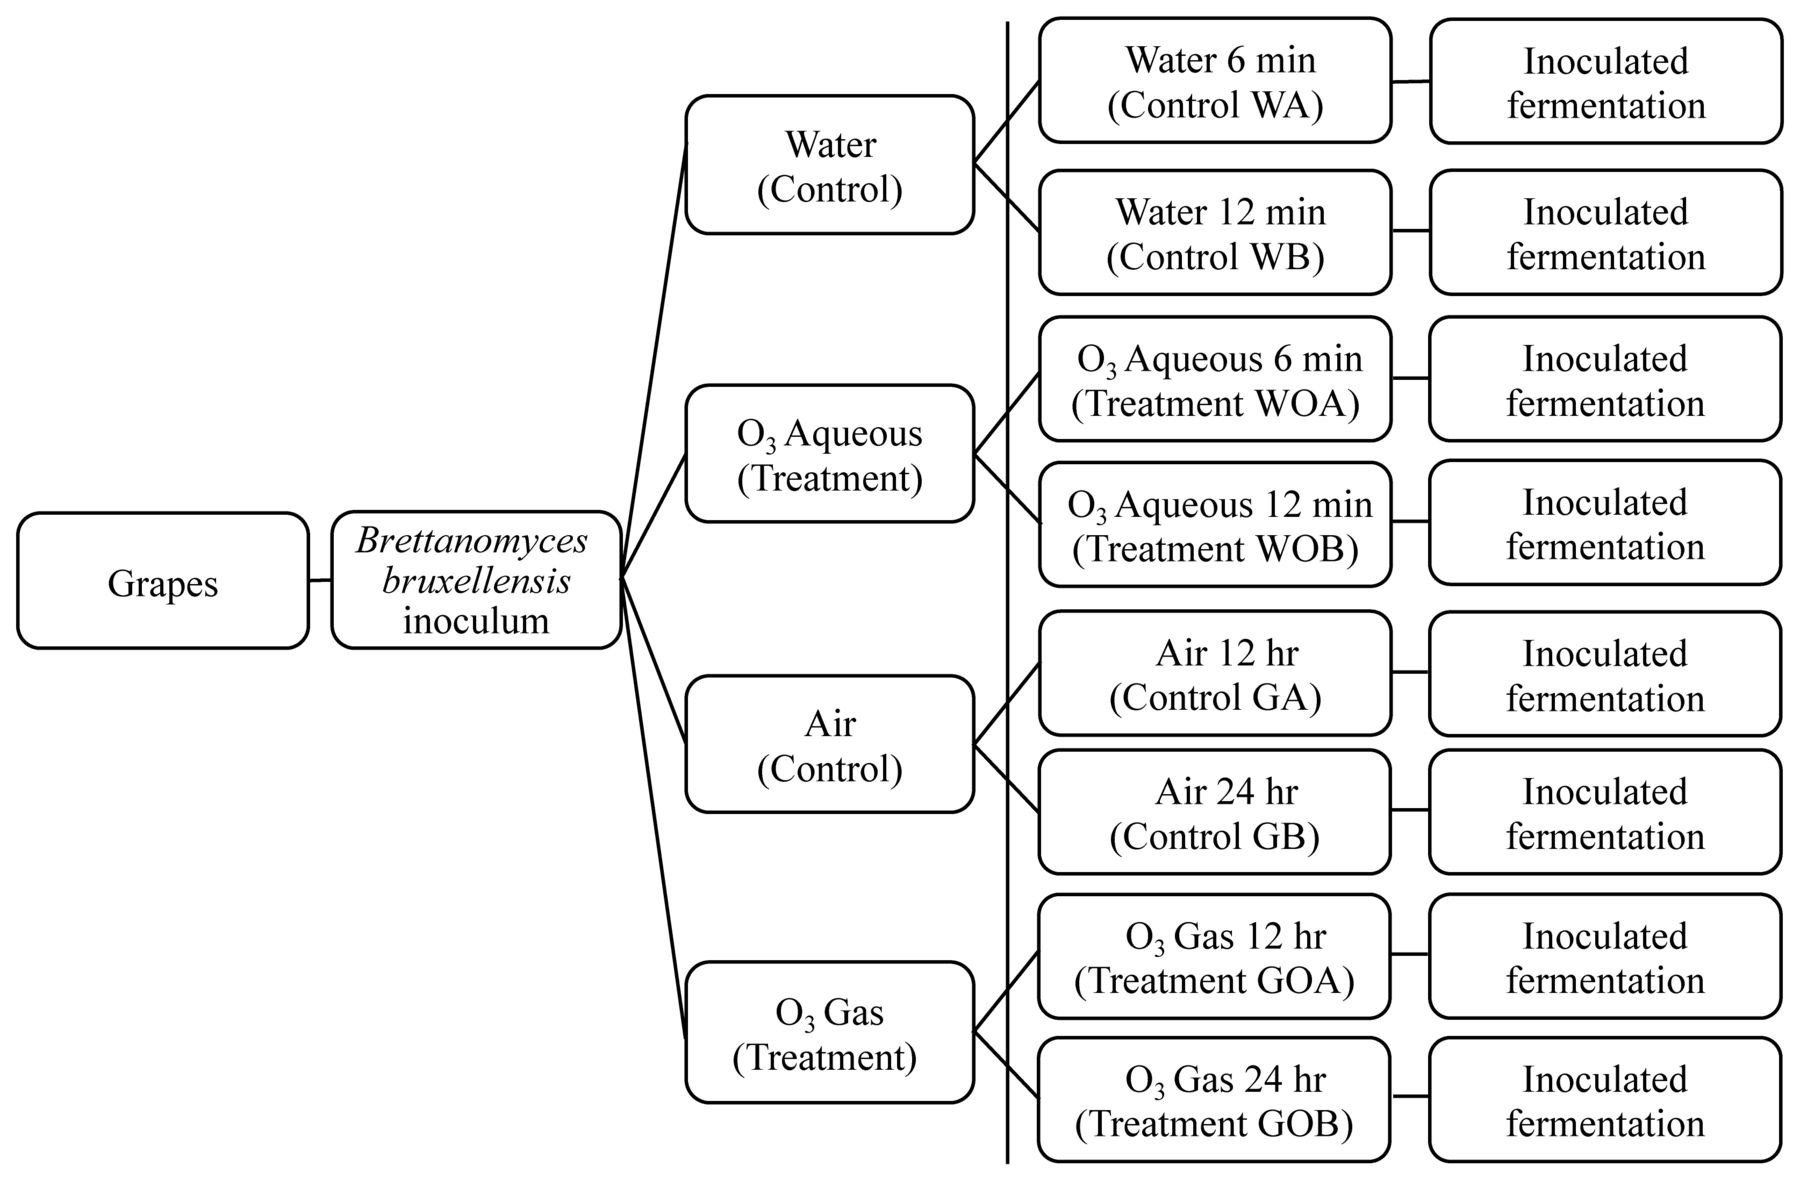 Efficacy of Ozone against Different Strains of Brettanomyces